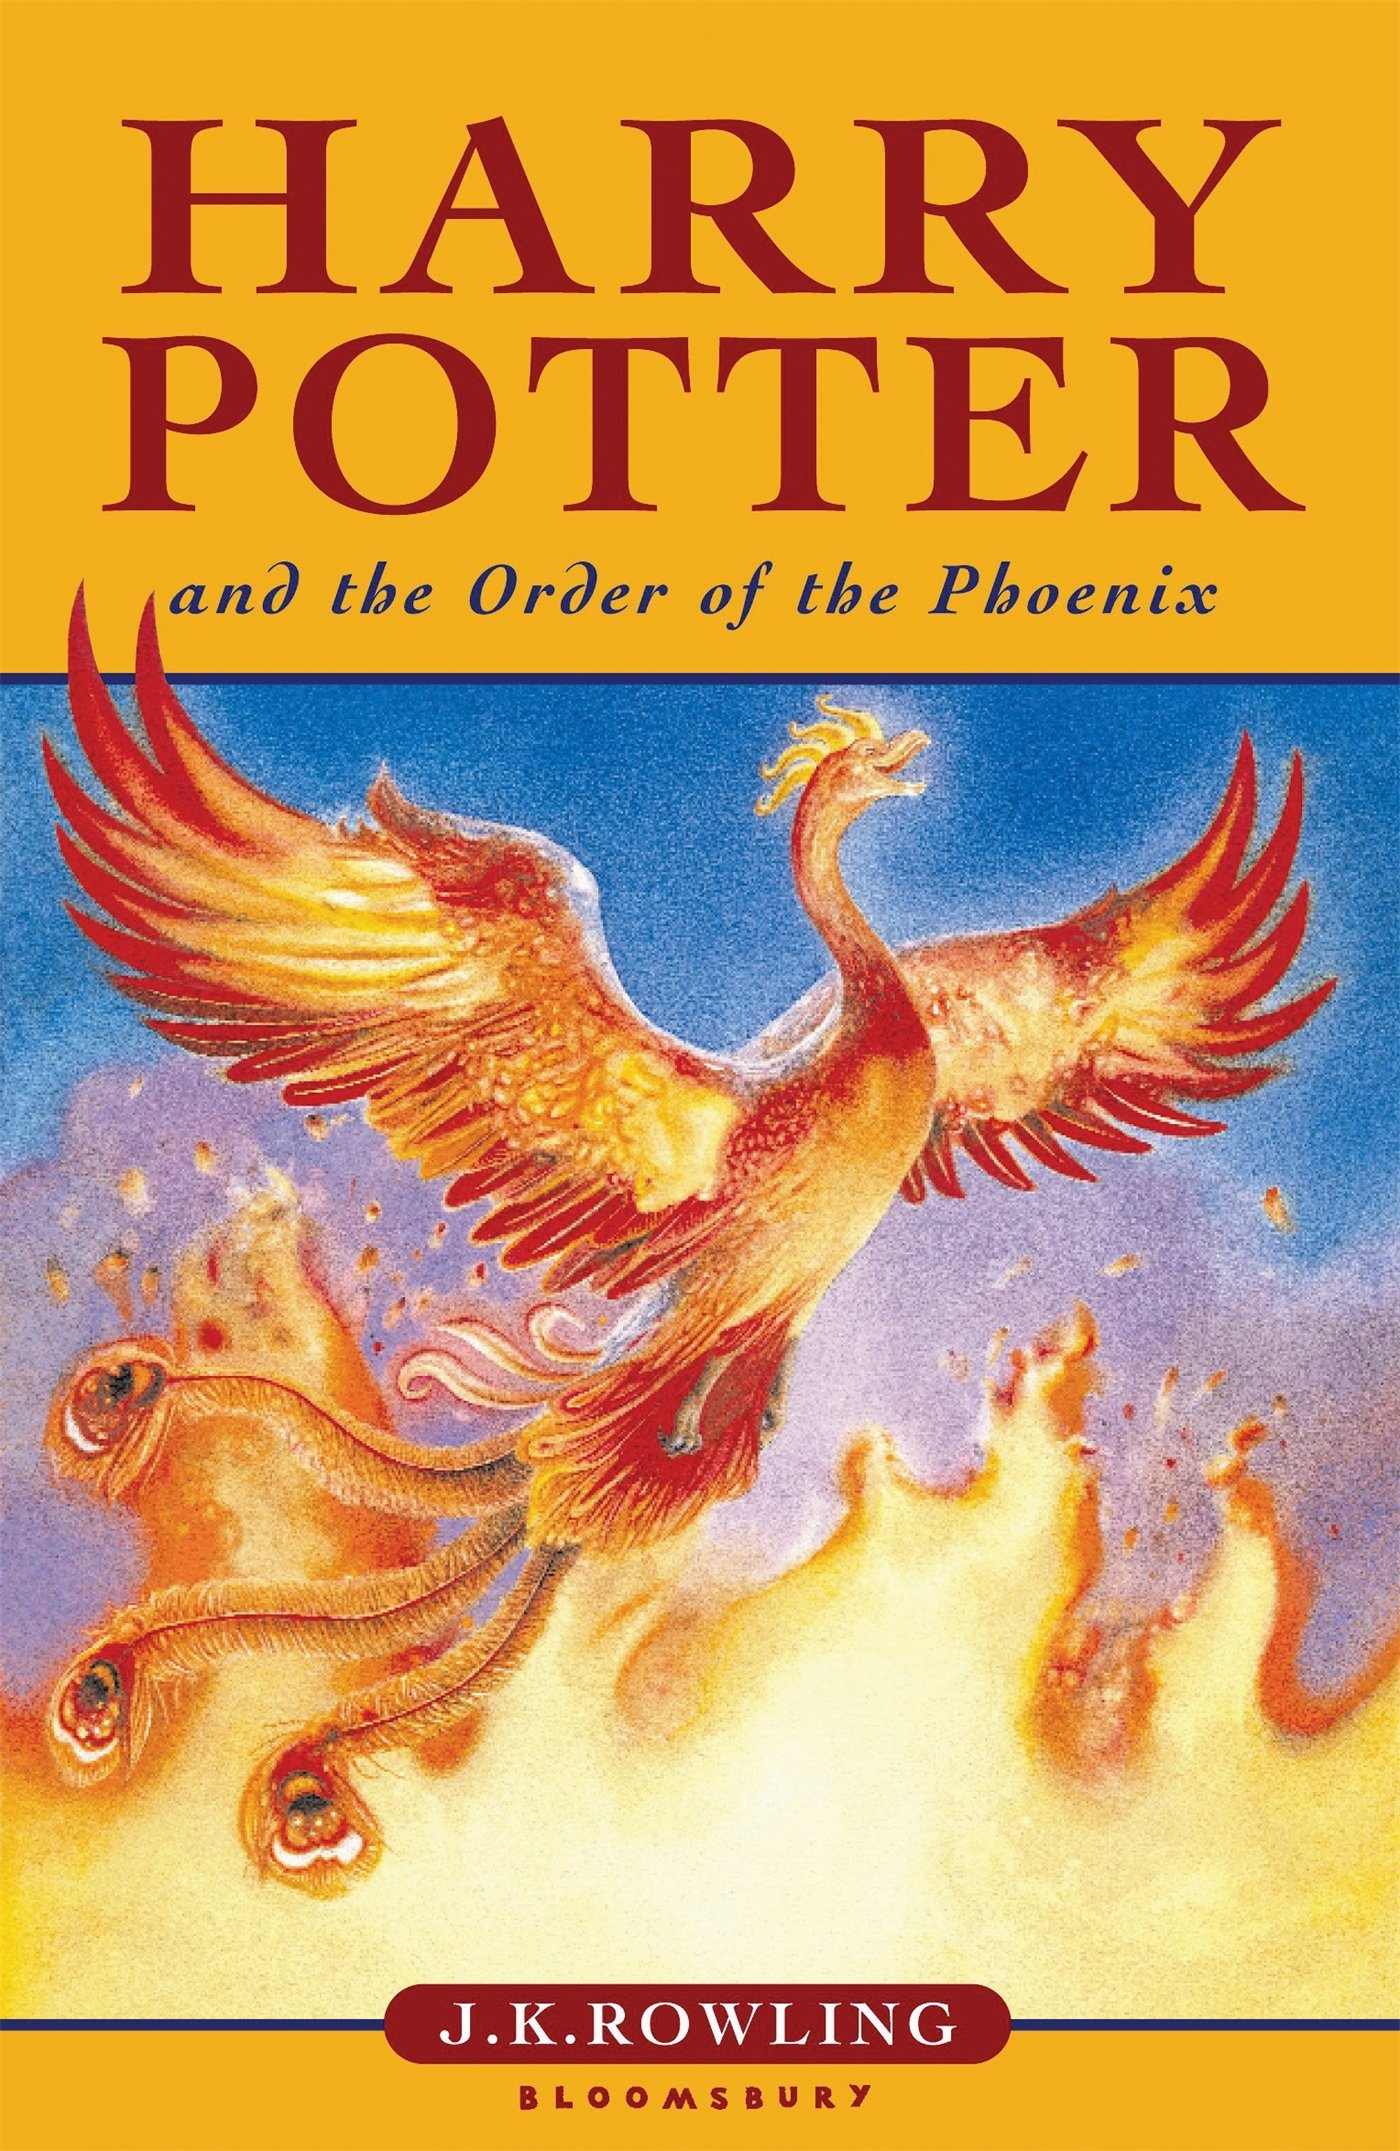 Image result for harry potter and the order of the phoenix book